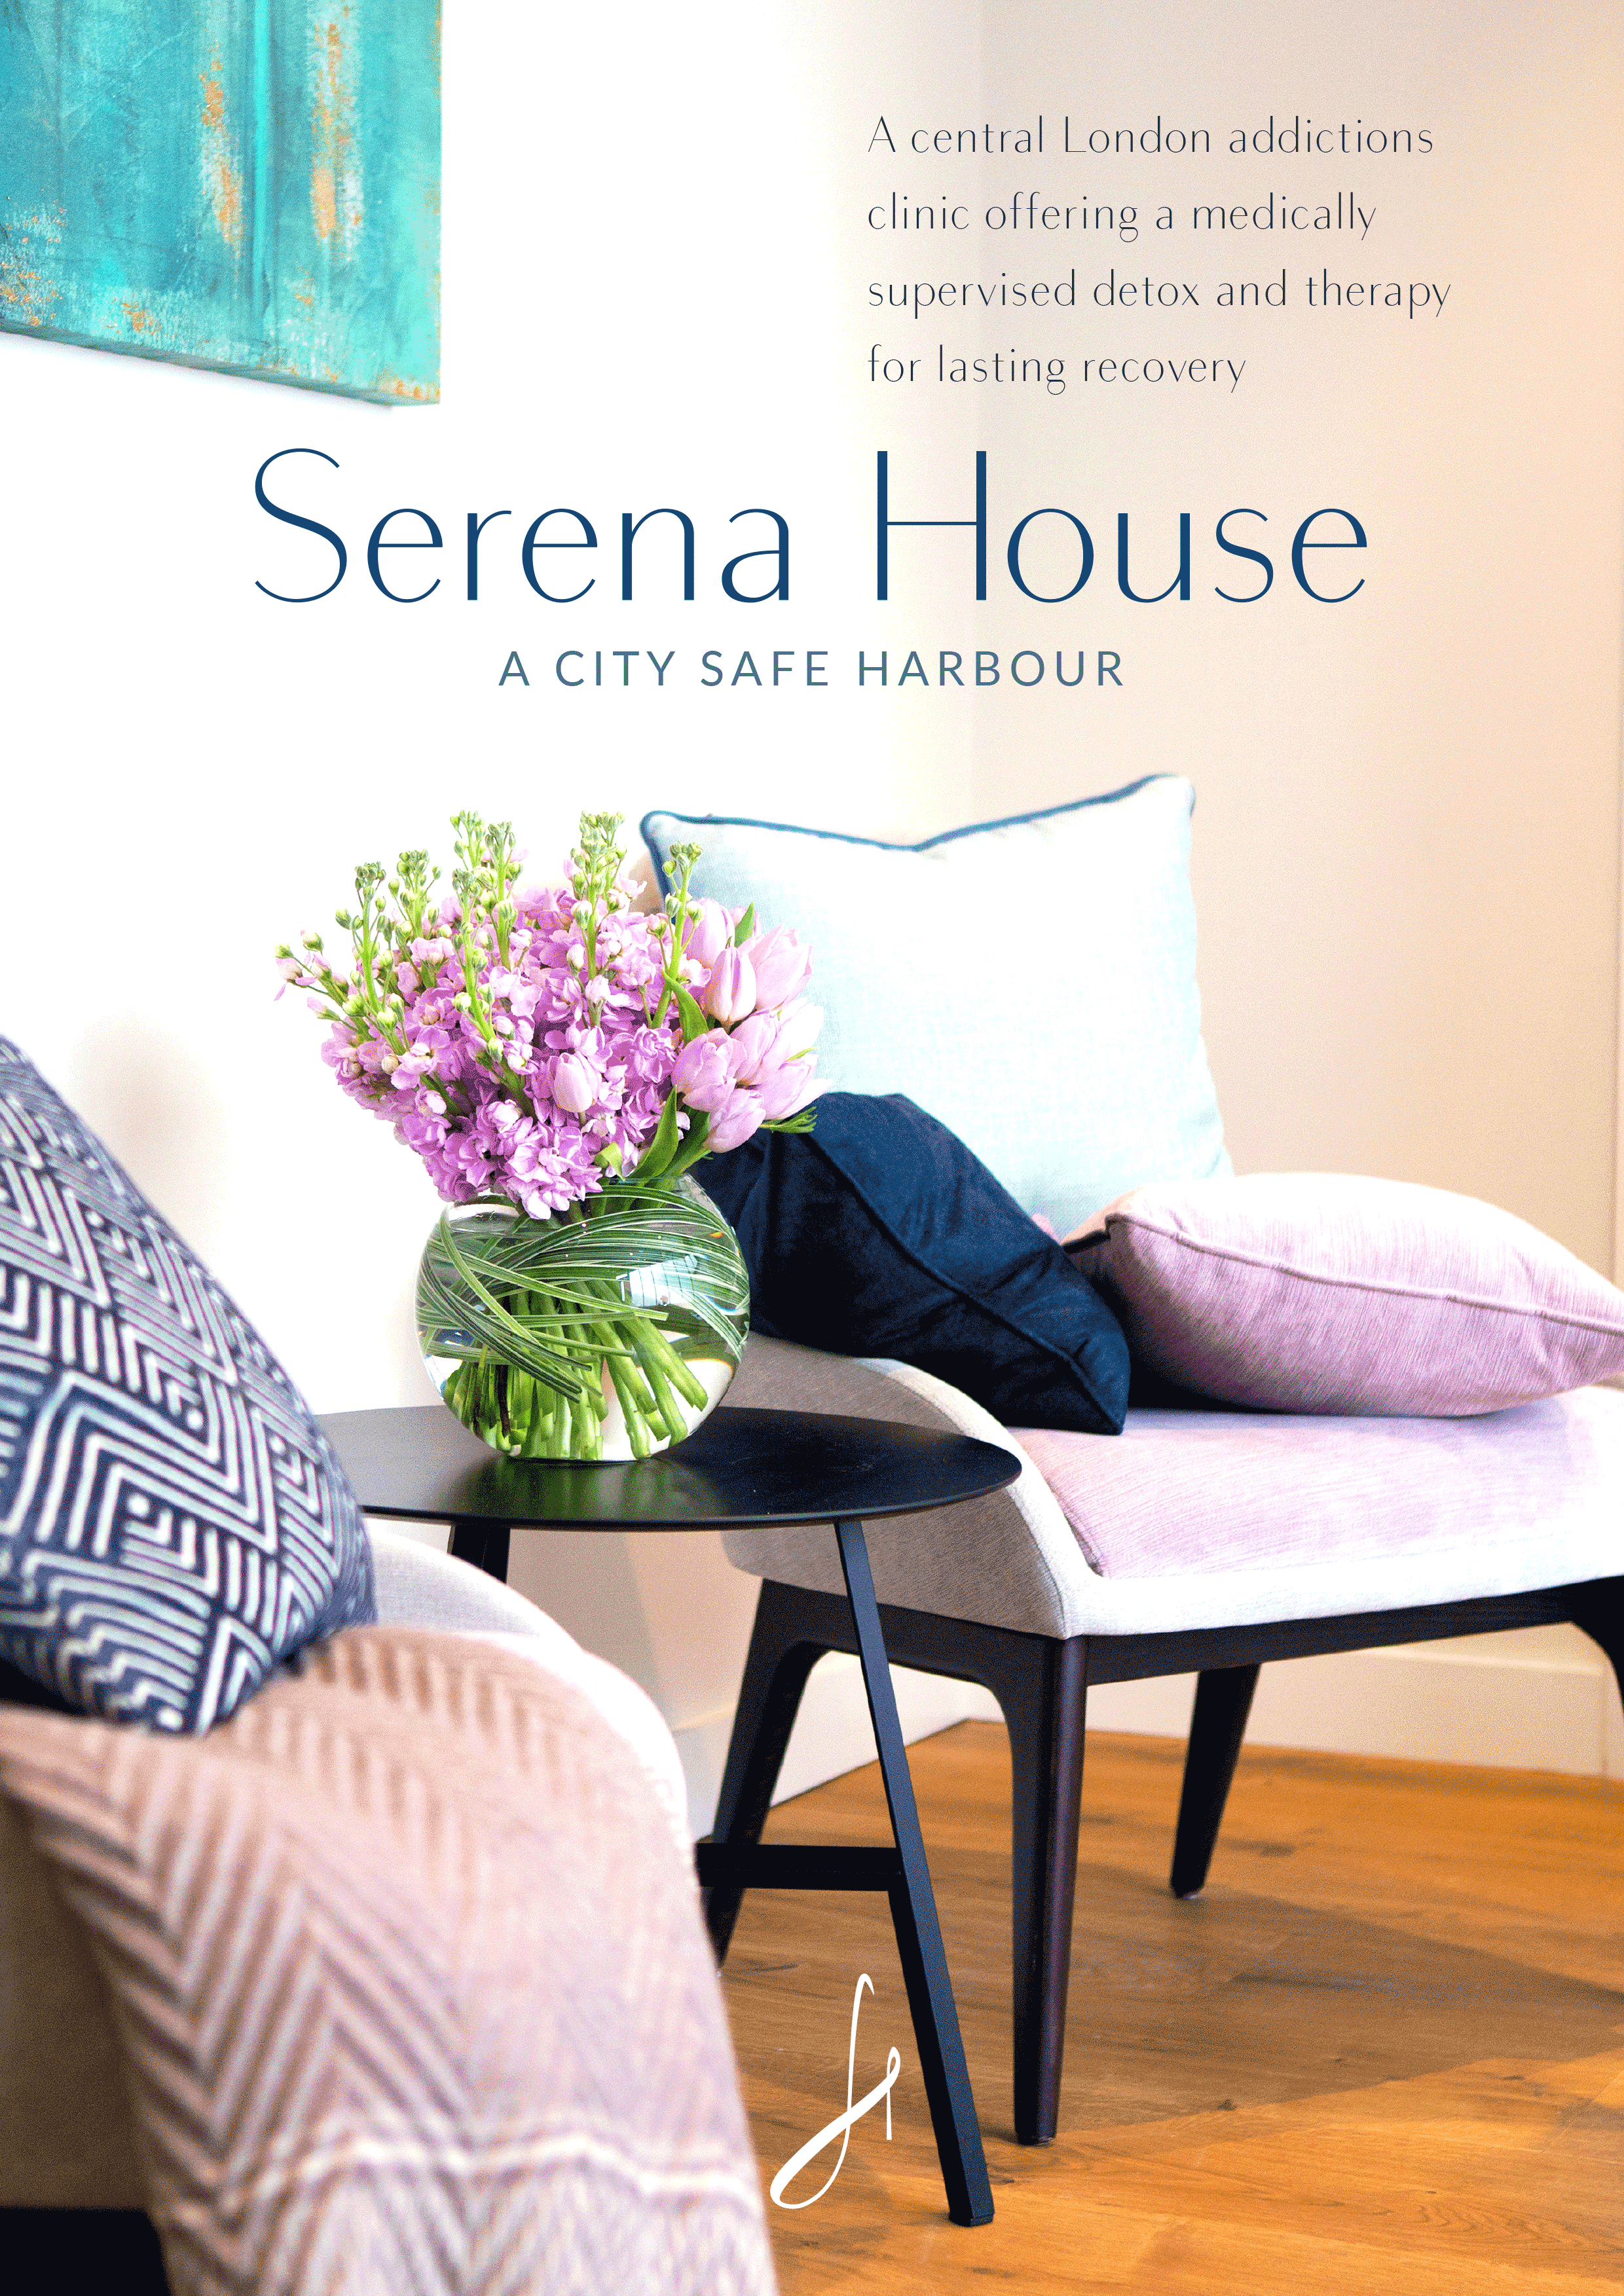 BROCHURE FOR SERENA HOUSE